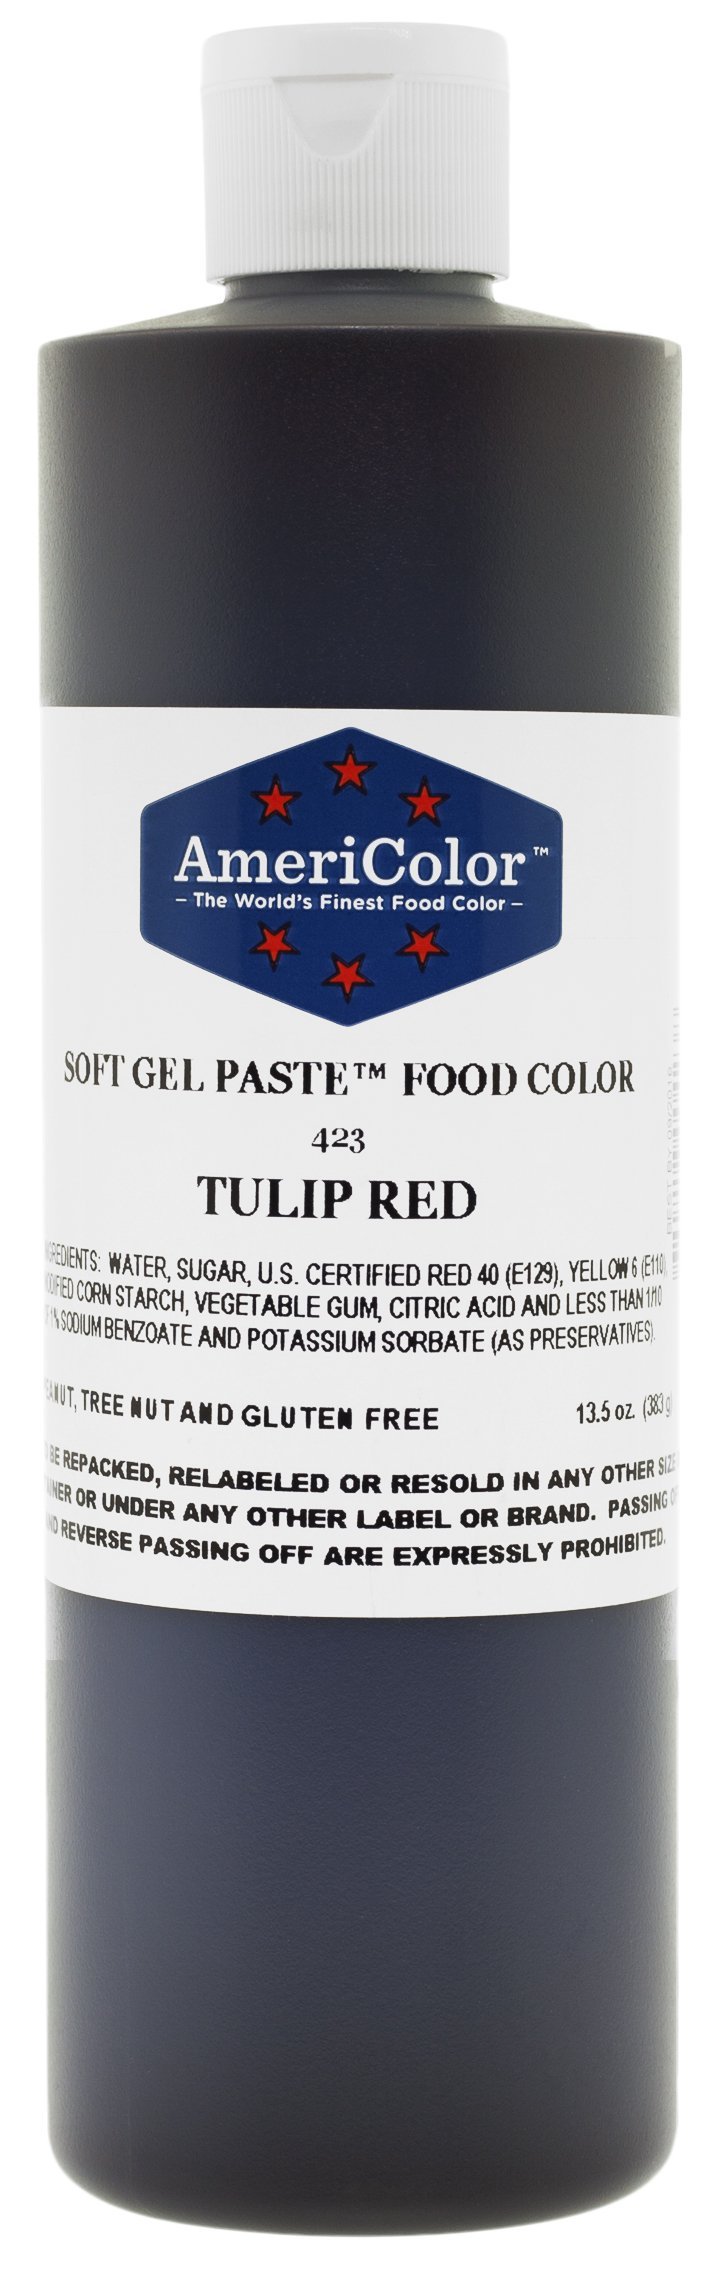 TULIP RED 13.5 Ounce Soft Gel Paste Food Color